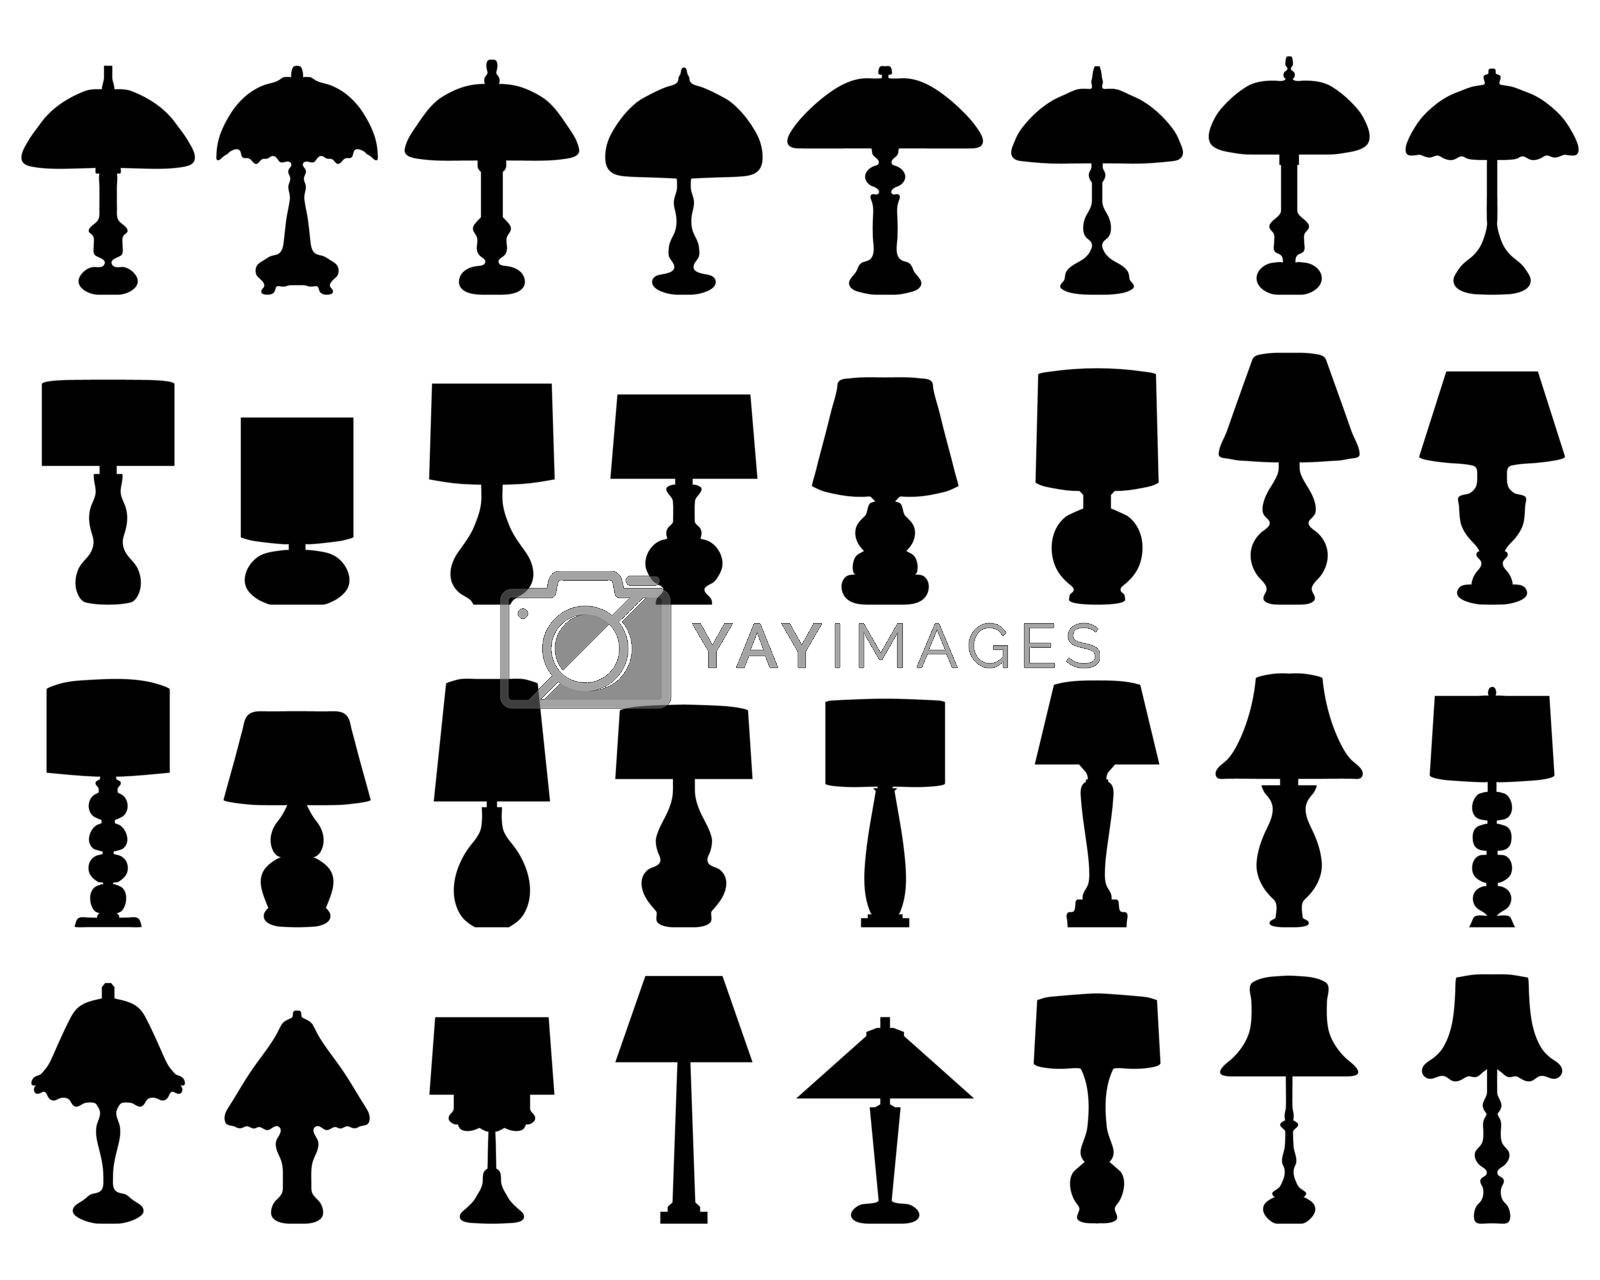 Black silhouettes of lamps and lighting on a white background